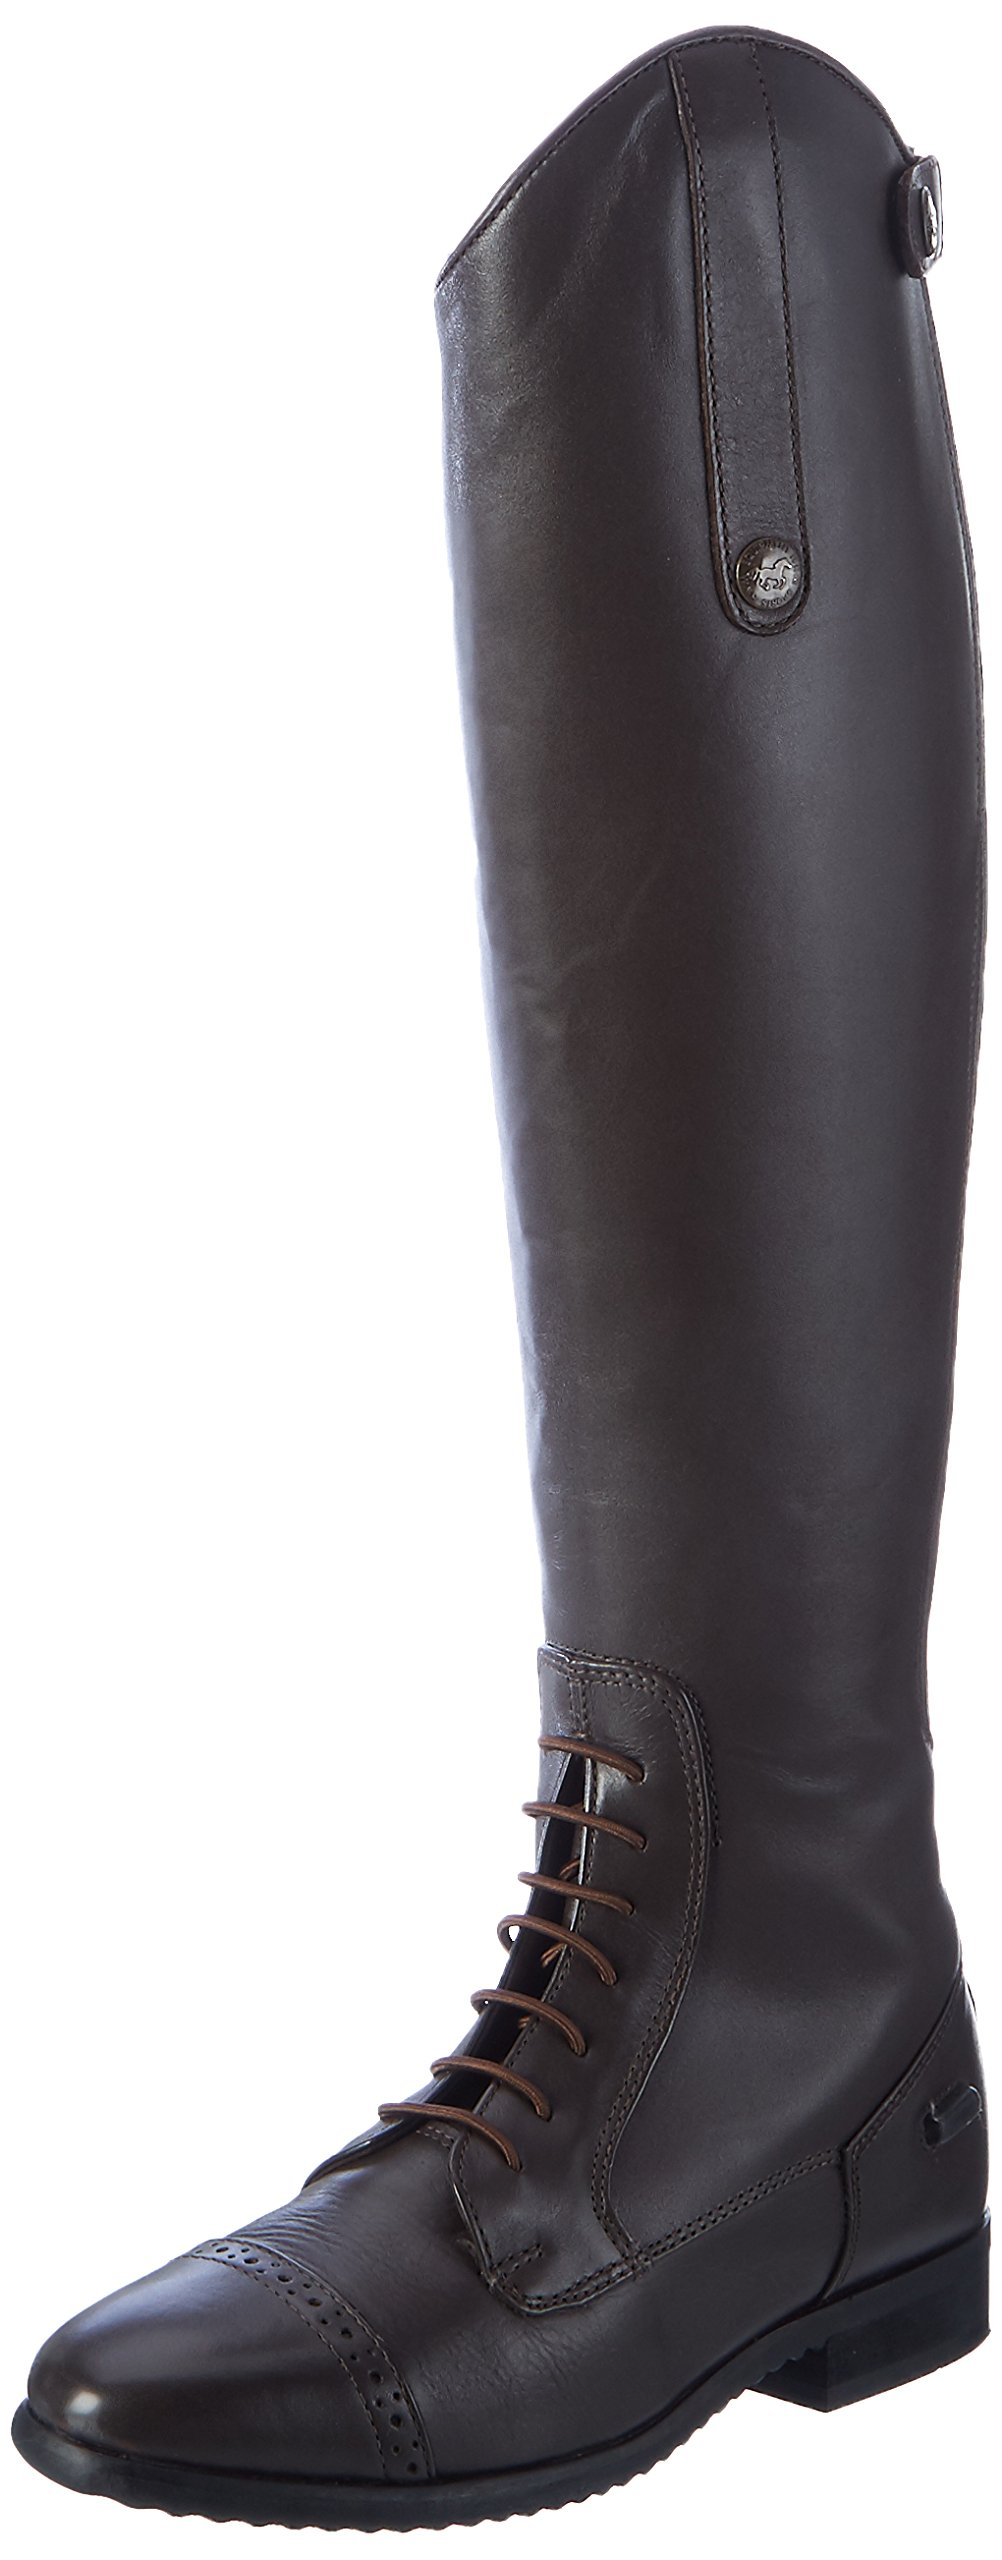 Hkm乗馬用ブーツバレンシアロングチューブ/トップ、メンズ、Reitstiefel -Valencia-、Lange / enge Weite